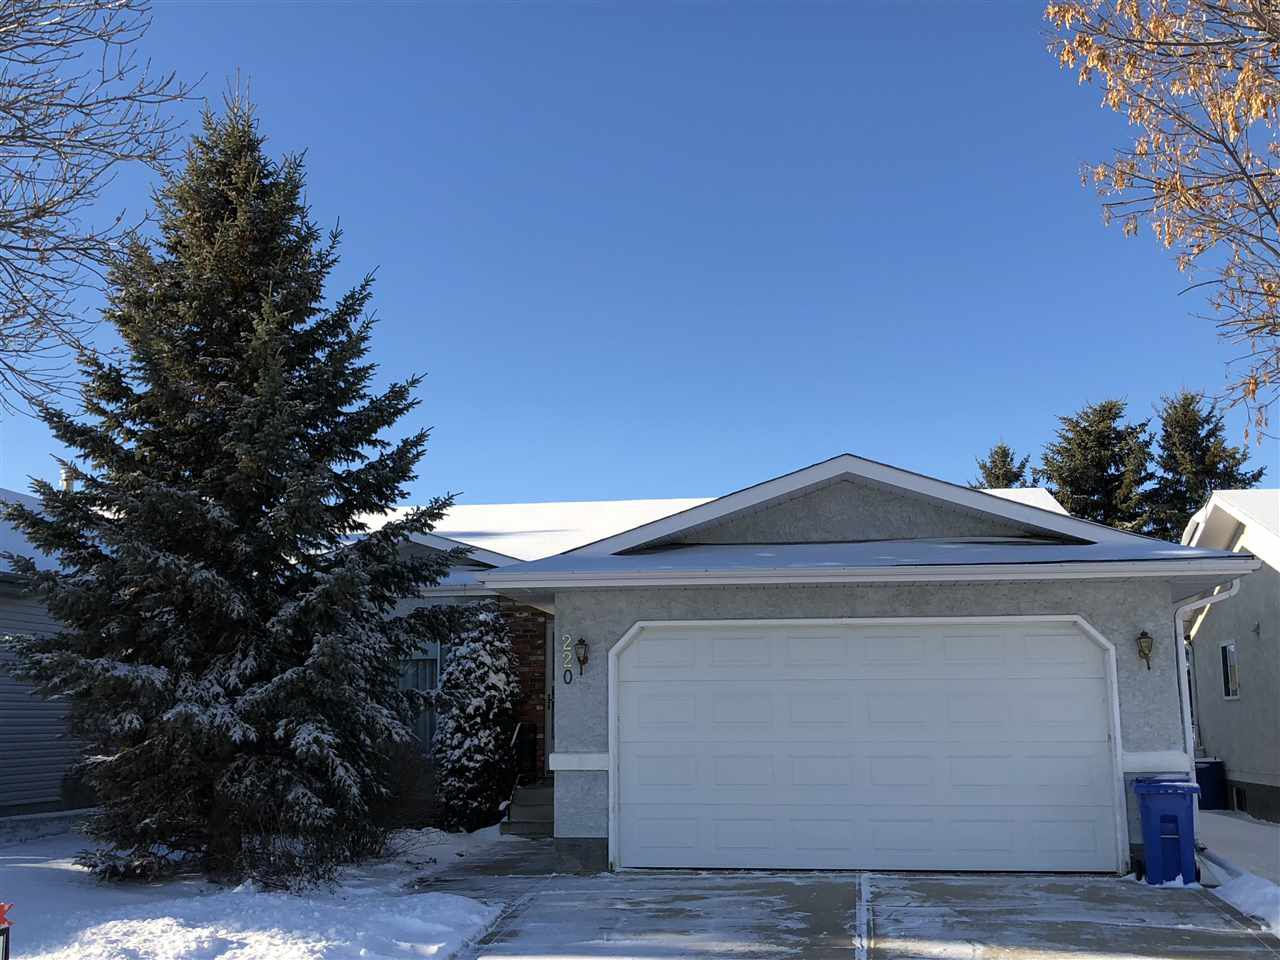 Main Photo: 220 Parkside Drive: Wetaskiwin House for sale : MLS®# E4134713